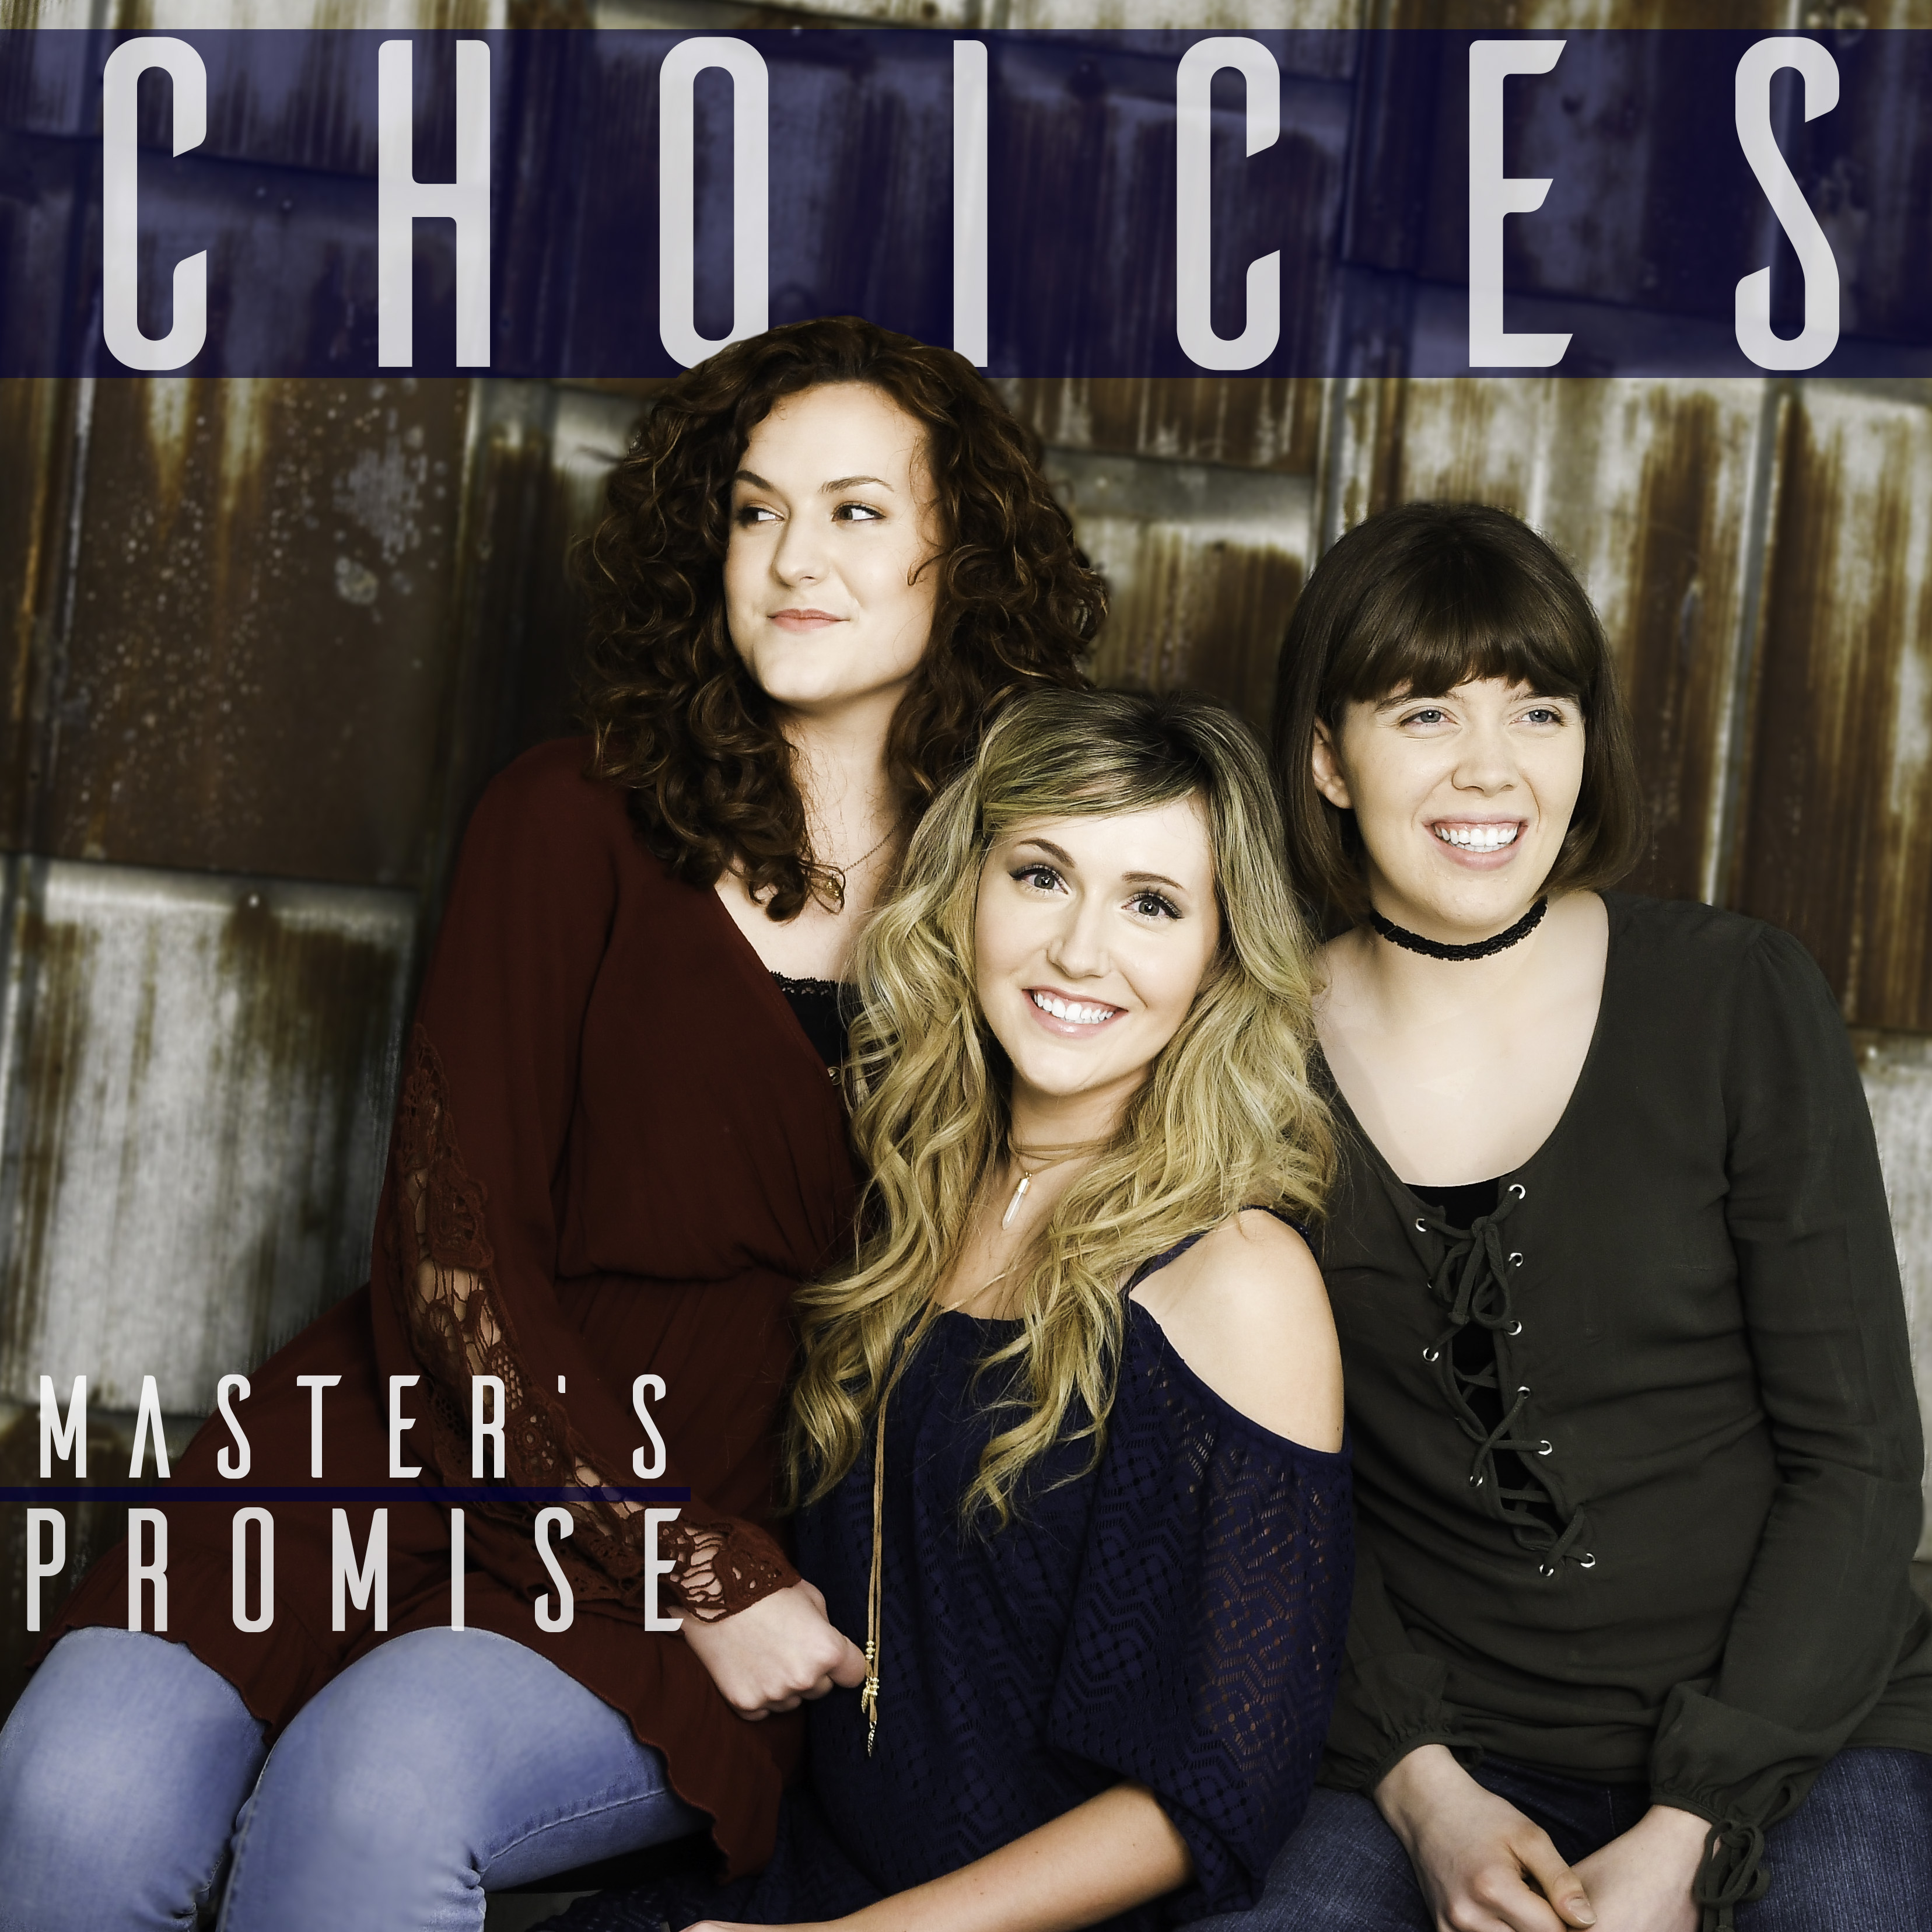 Master's Promise—Choices